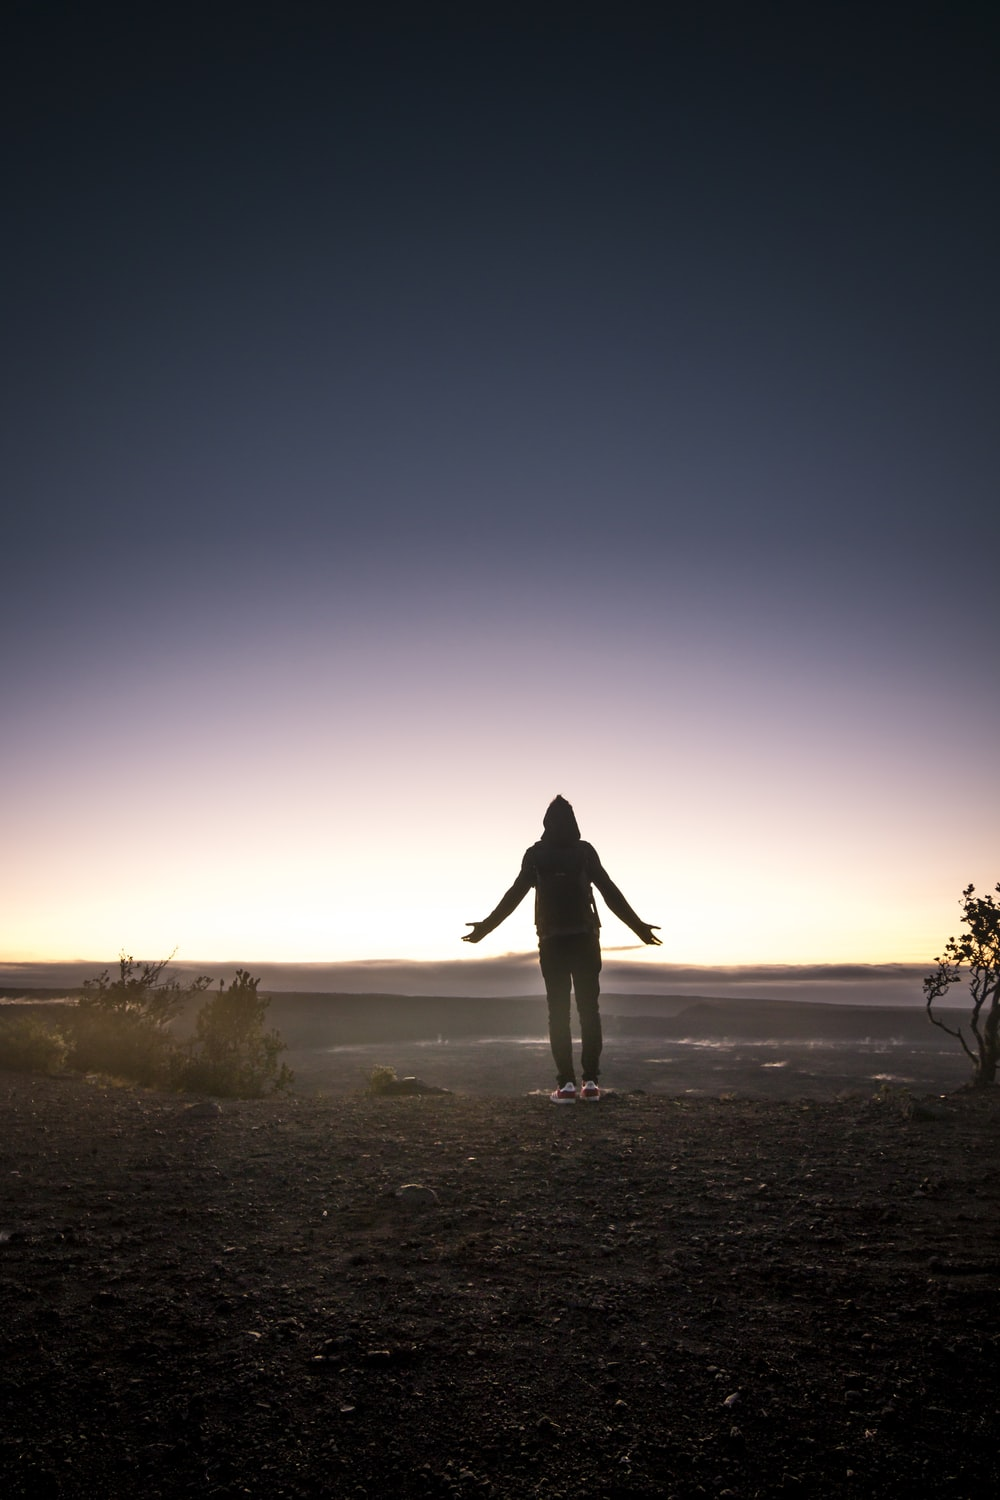 silhouette of person standing on mountain top